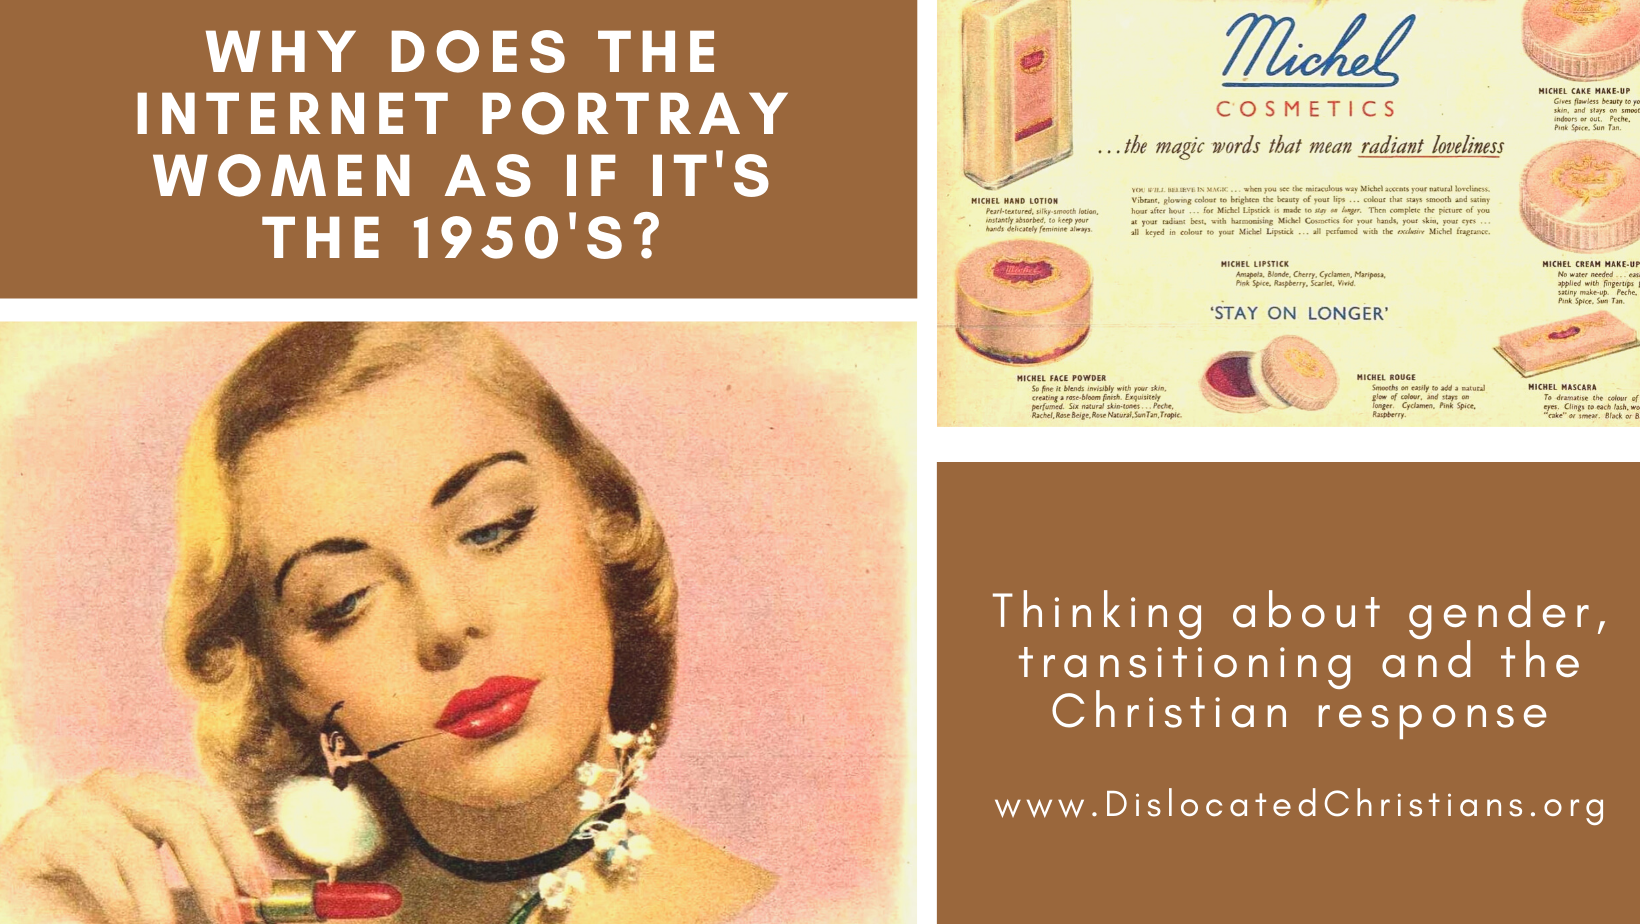 1950s make-up advert, gender transitioning and the Christian response